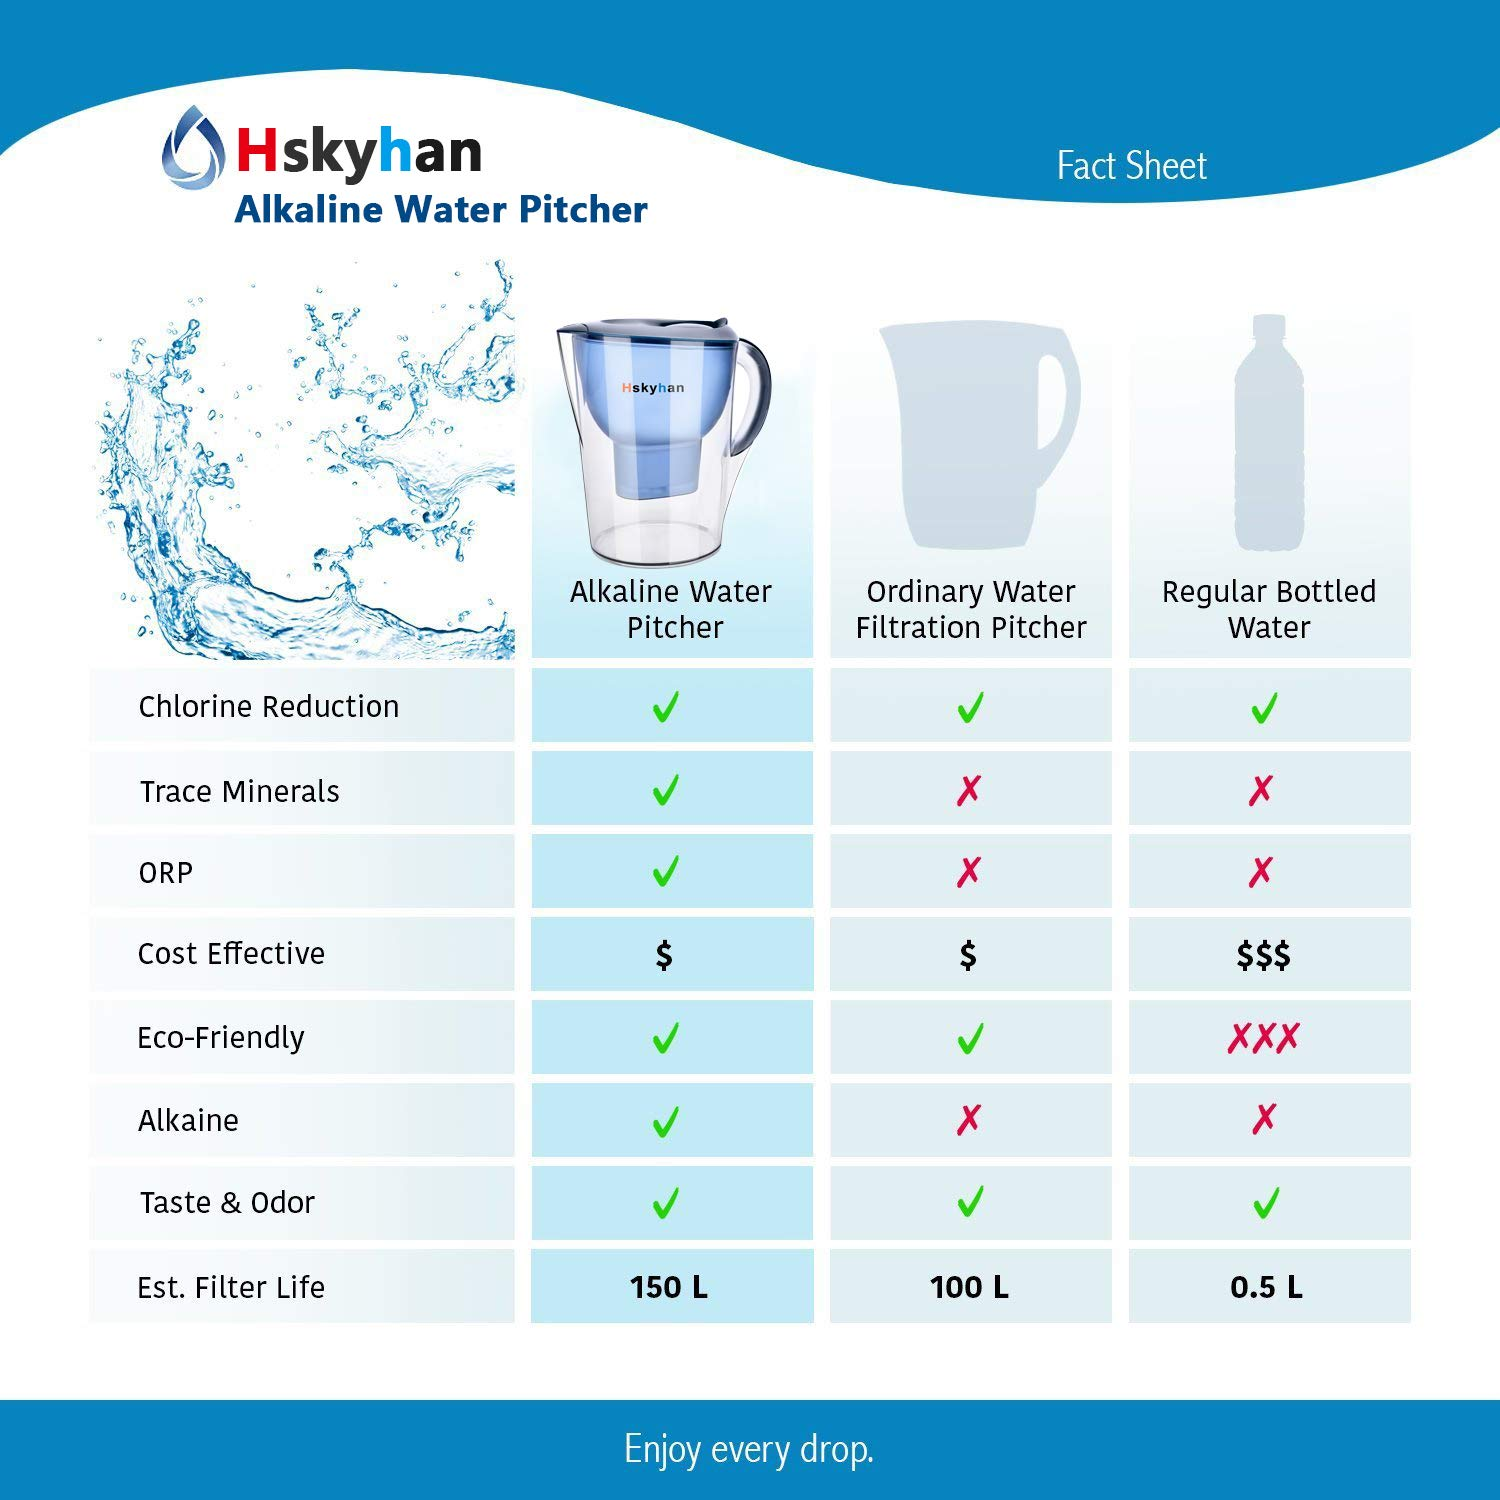 Hskyhan Alkaline Water Filter Pitcher - 3.5 Liters Improve PH, 2 Filters Included, 7 Stage Filteration System to Purify, Blue by Hskyhan (Image #4)